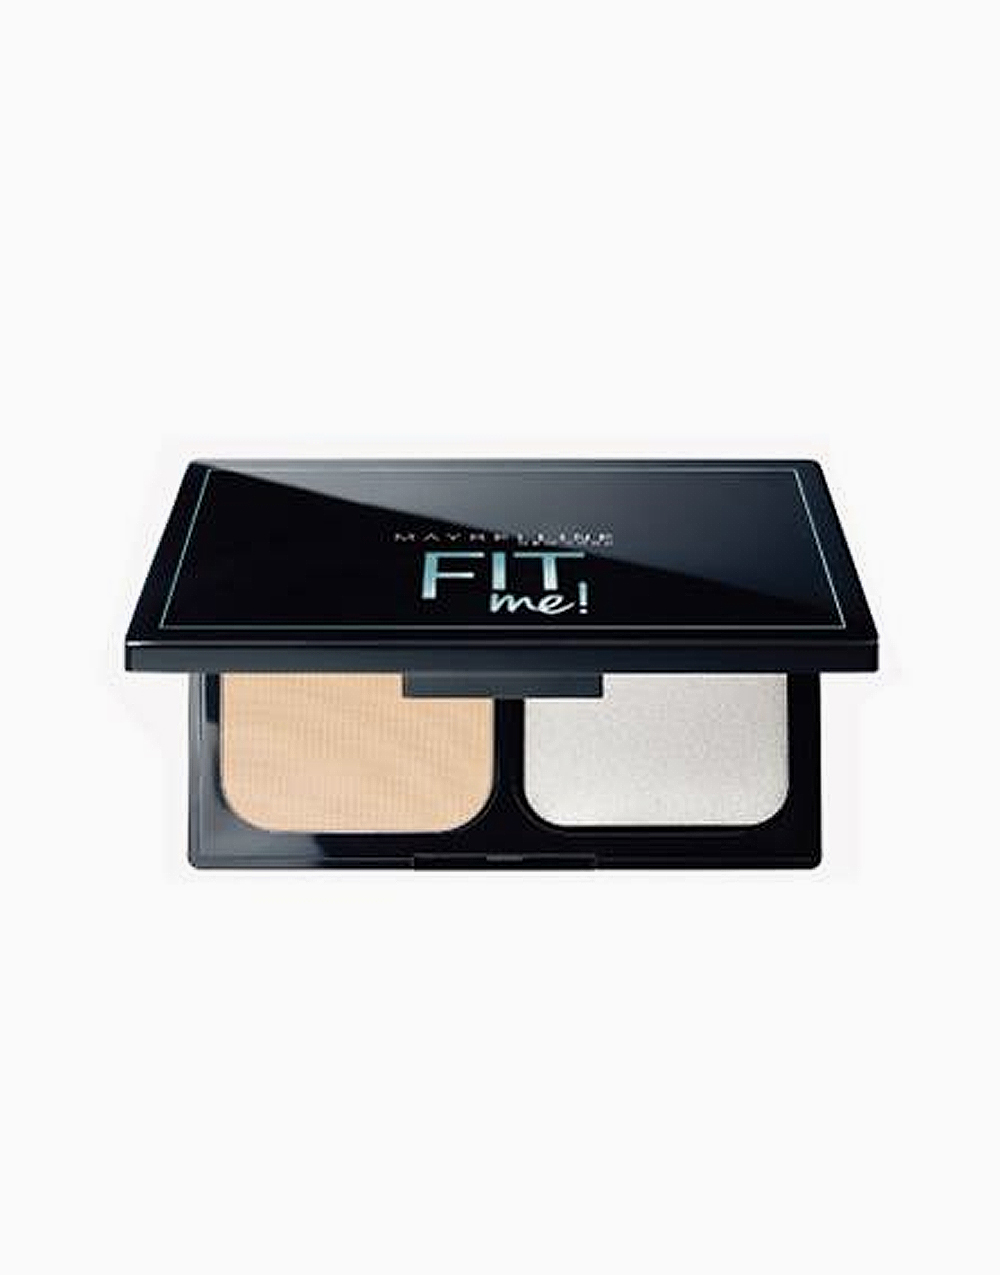 Fit Me Powder Foundation by Maybelline | 110 Porcelain